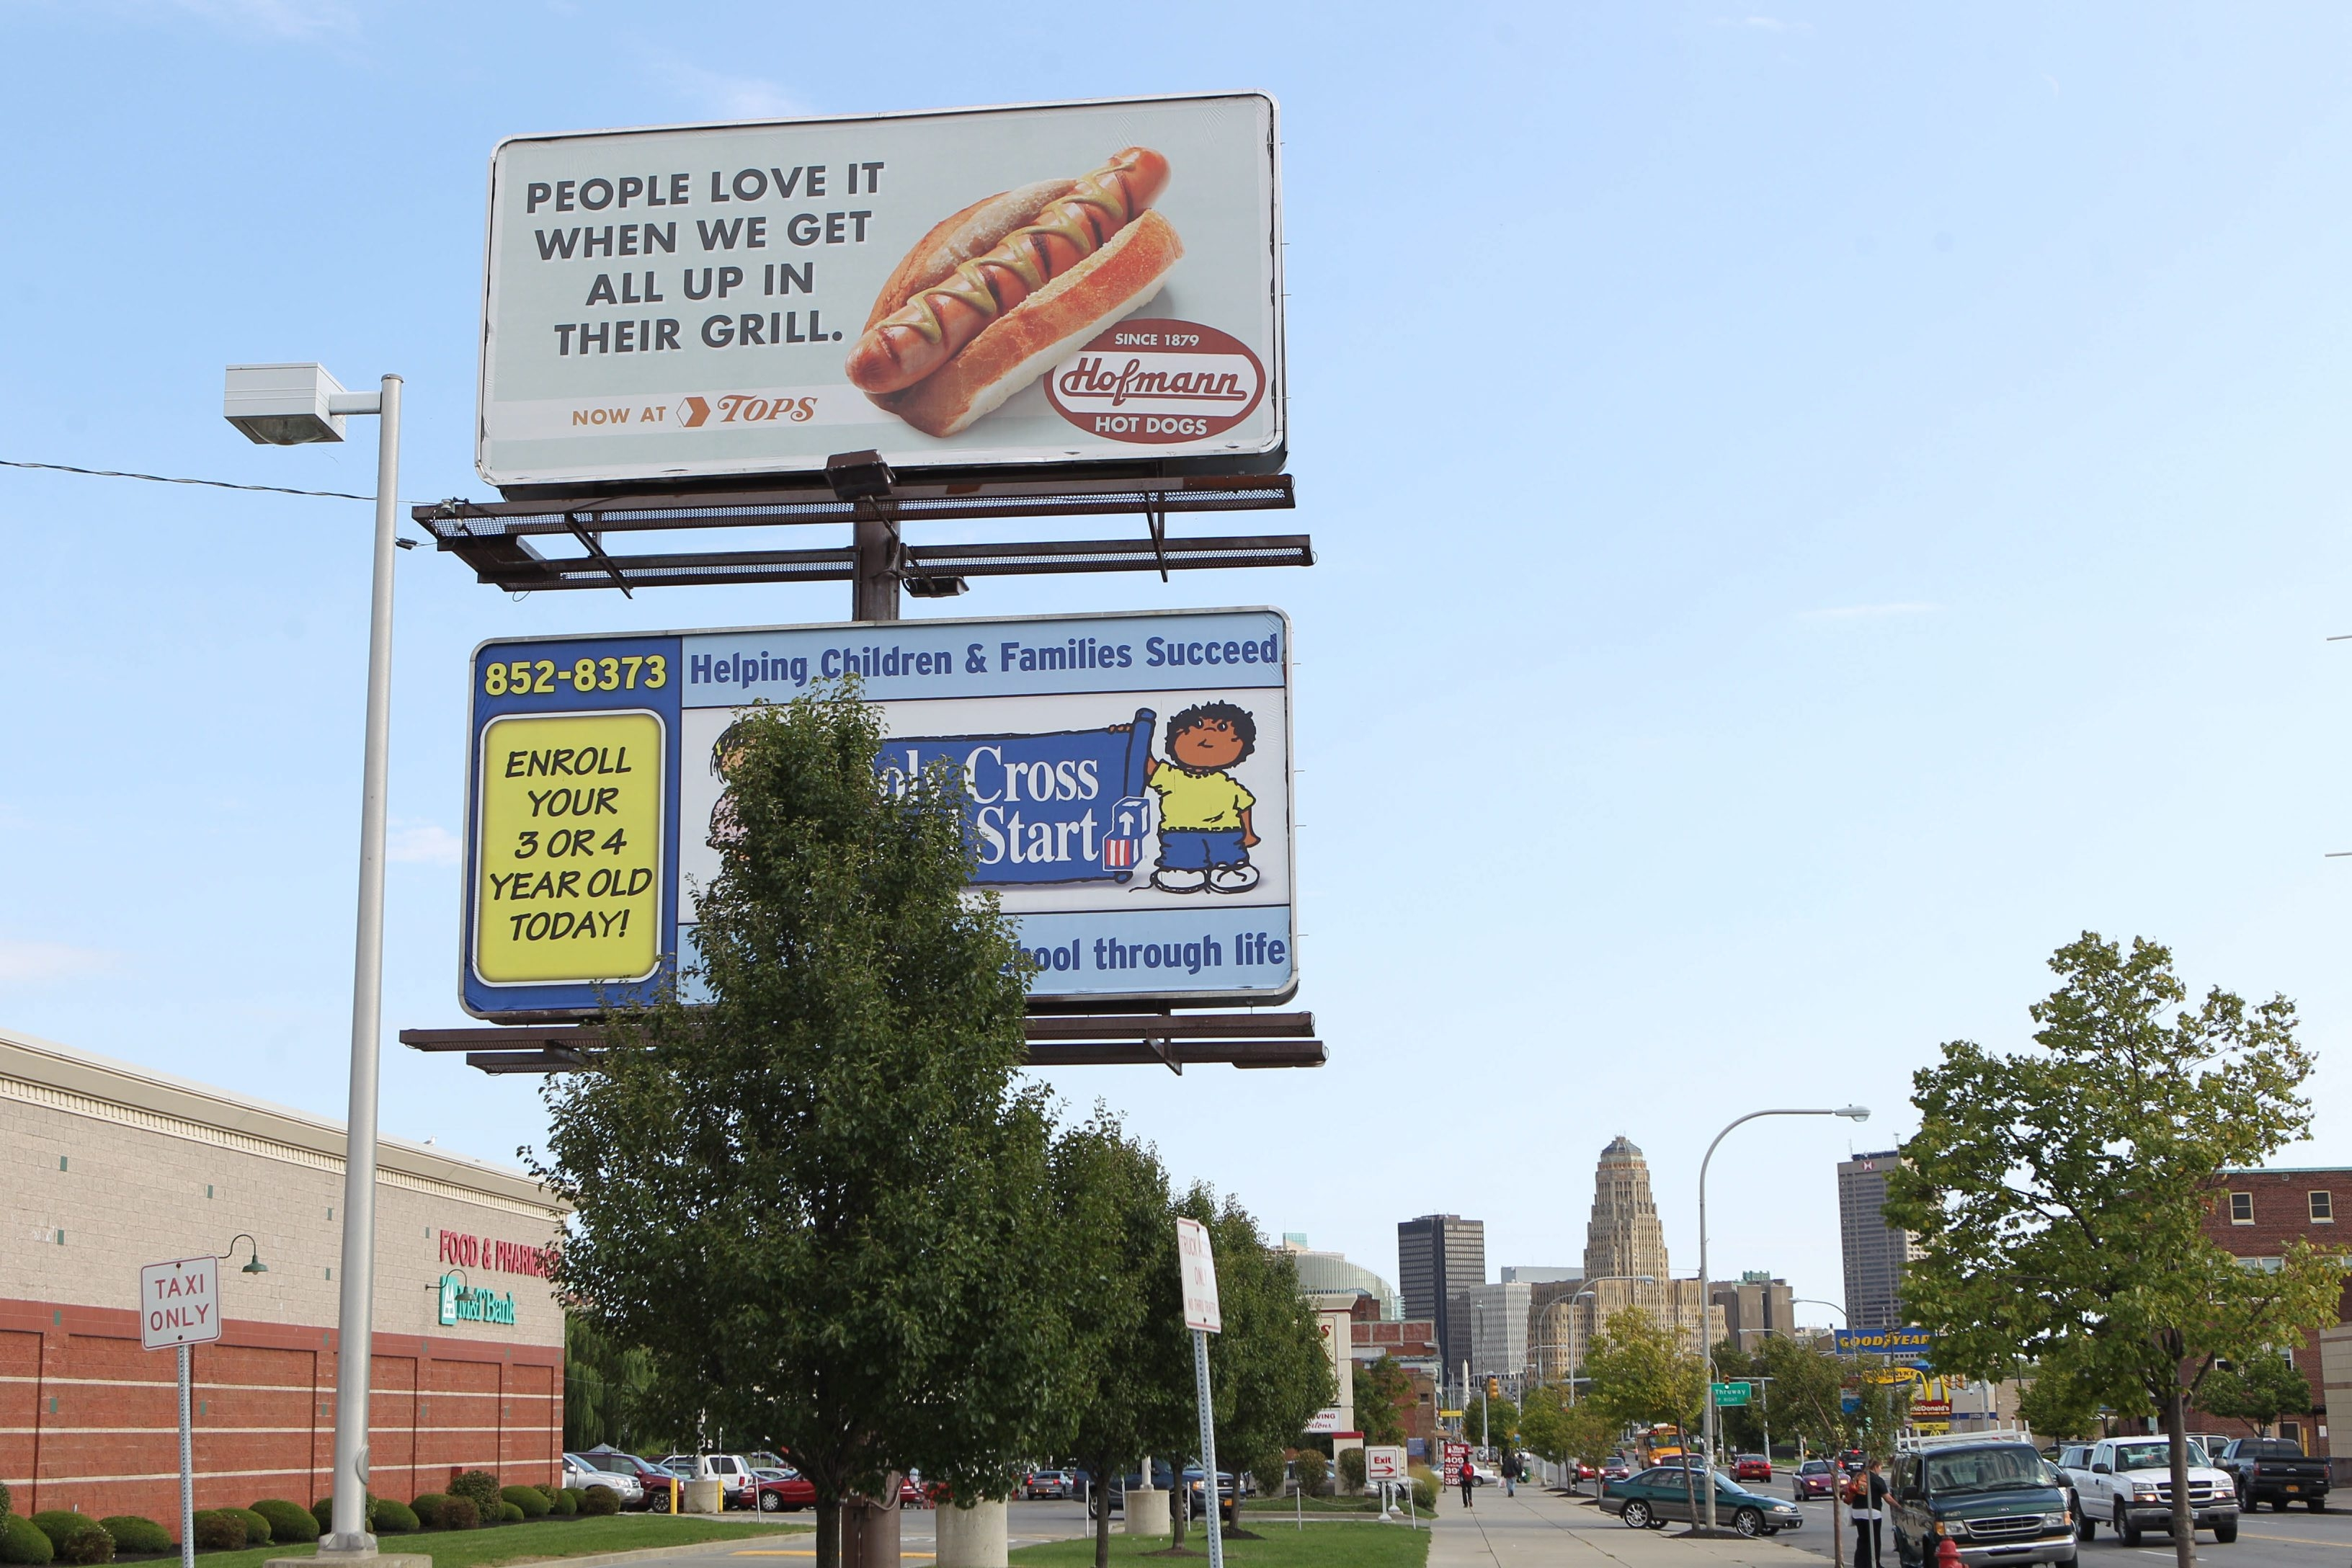 Sharon Cantillon/Buffalo News     A billboard overlooking Niagara Street in Buffalo advertises Hofmann hot dogs. The popular Central New York brand is moving into the Western New York market.